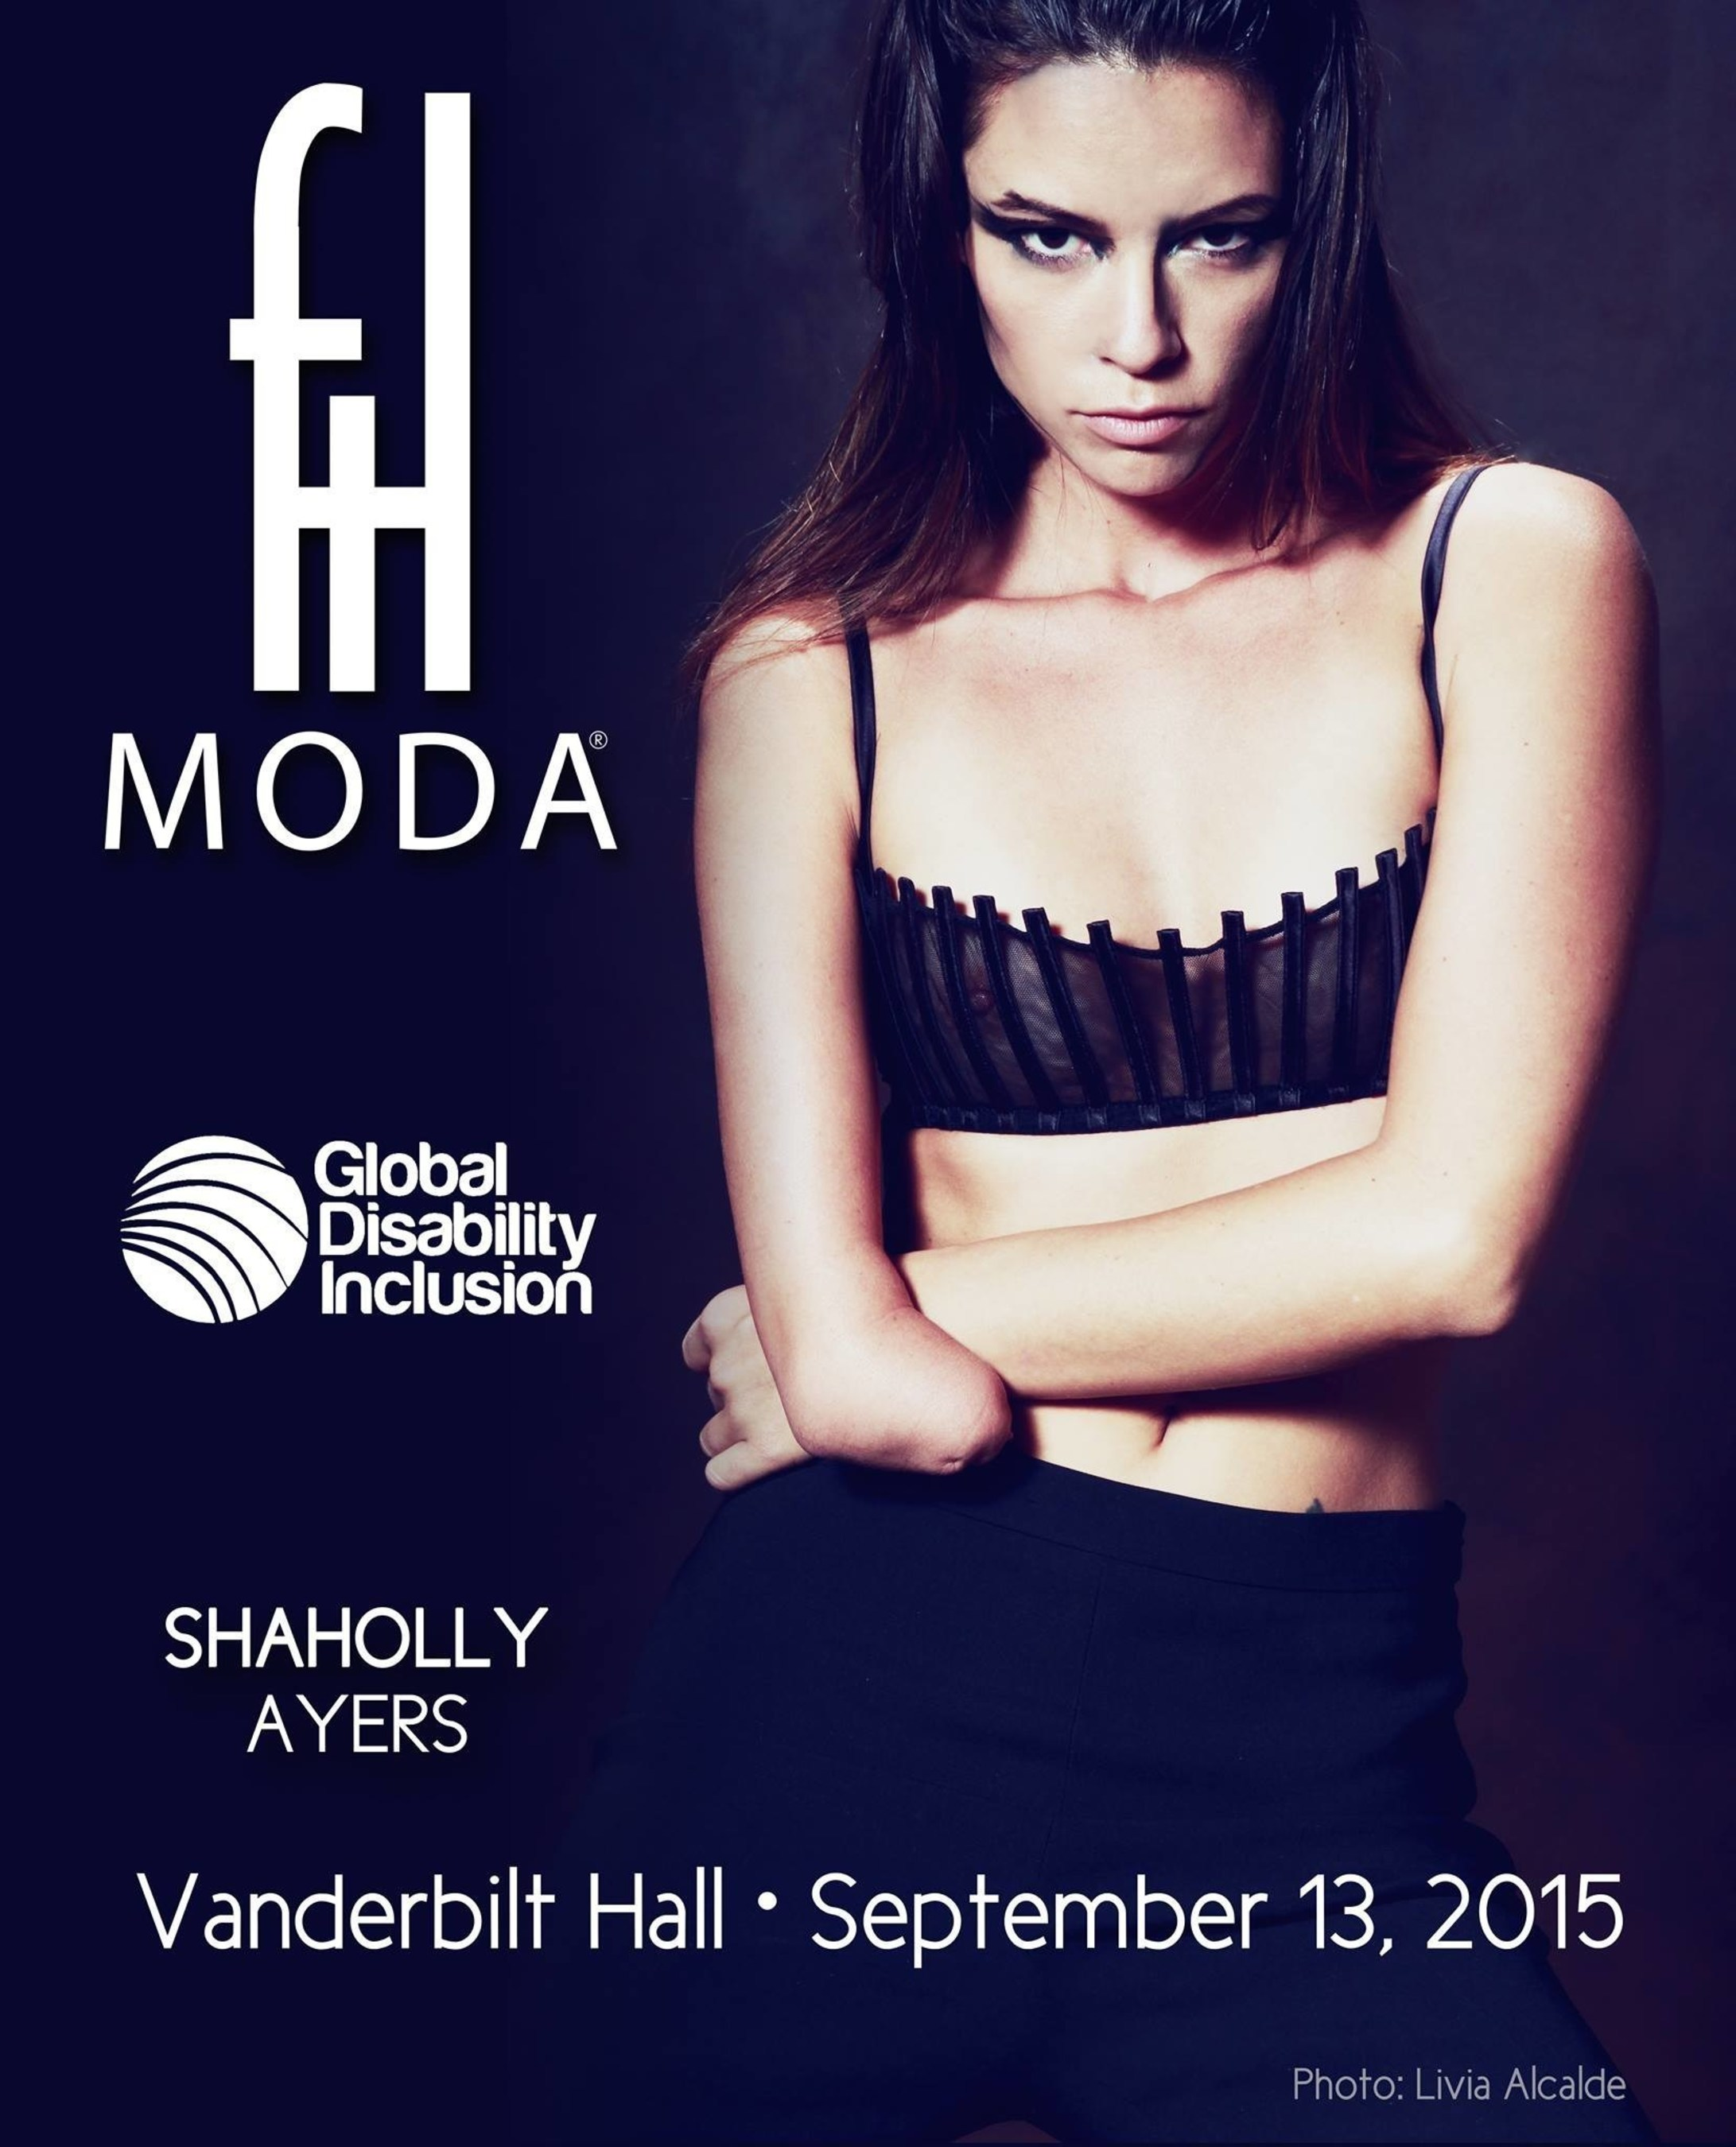 FTL MODA continues to catalyze the attention of the worldwide fashion industry preparing for its SS 2016 presentation at NYFW.